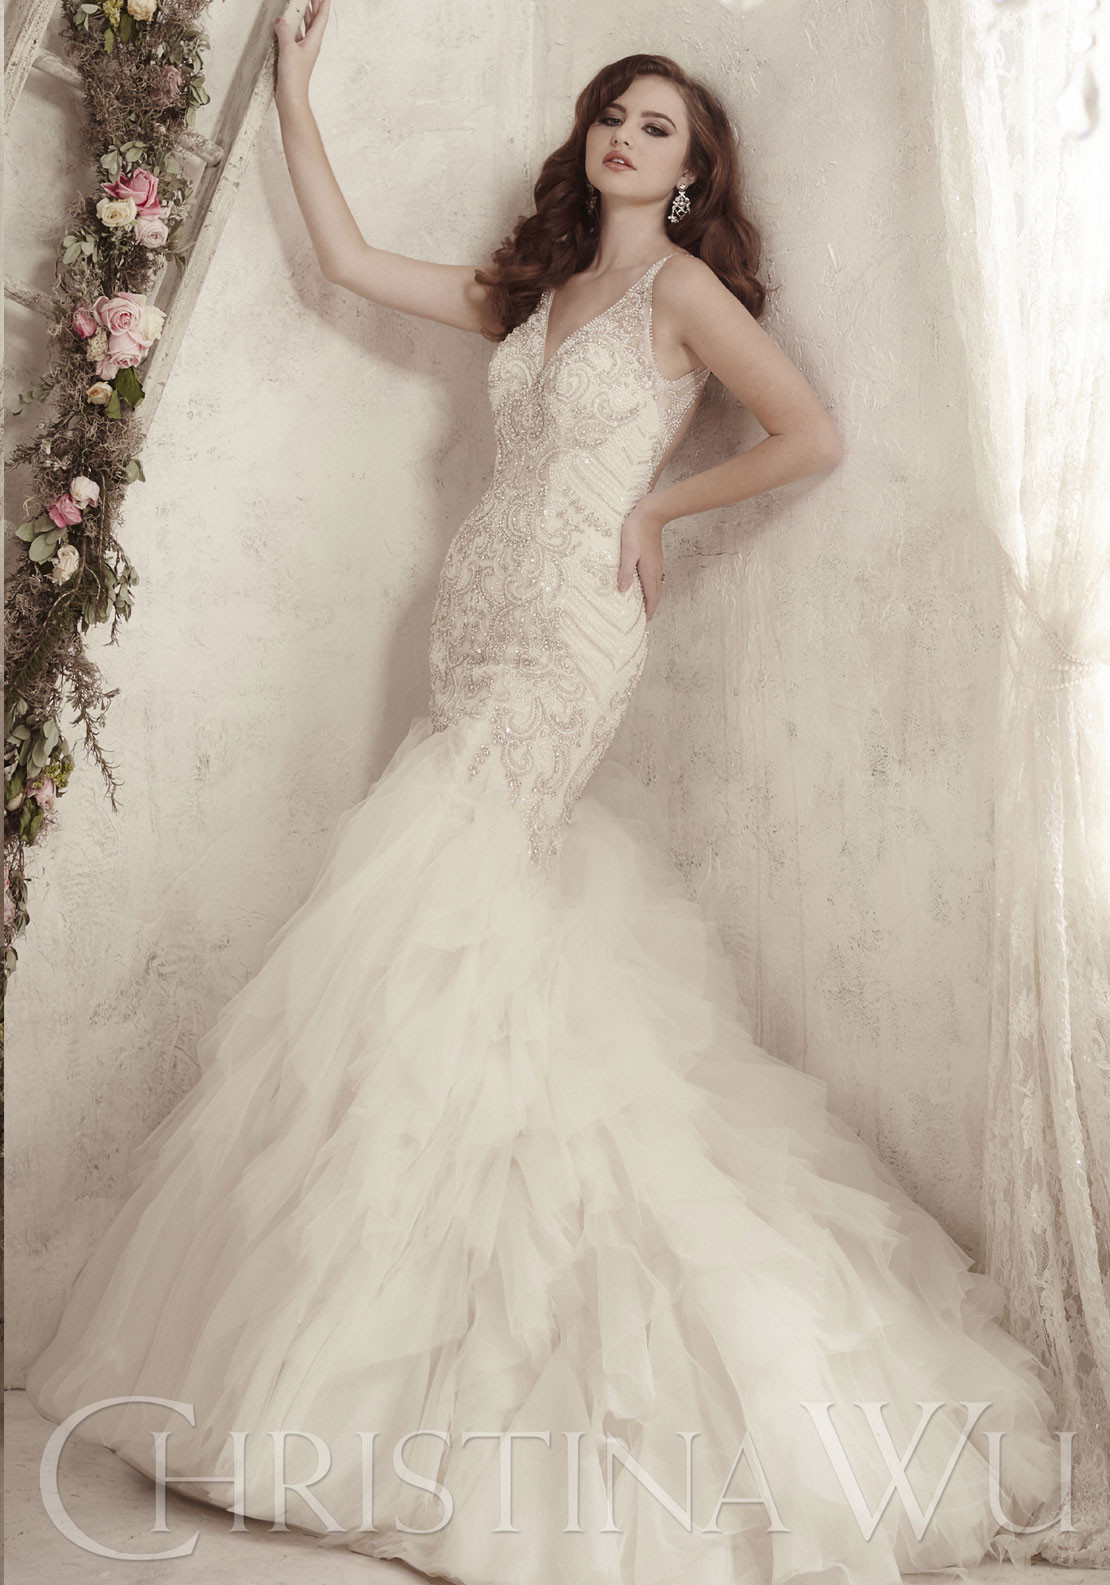 Christina Wu Wedding Dress 15603